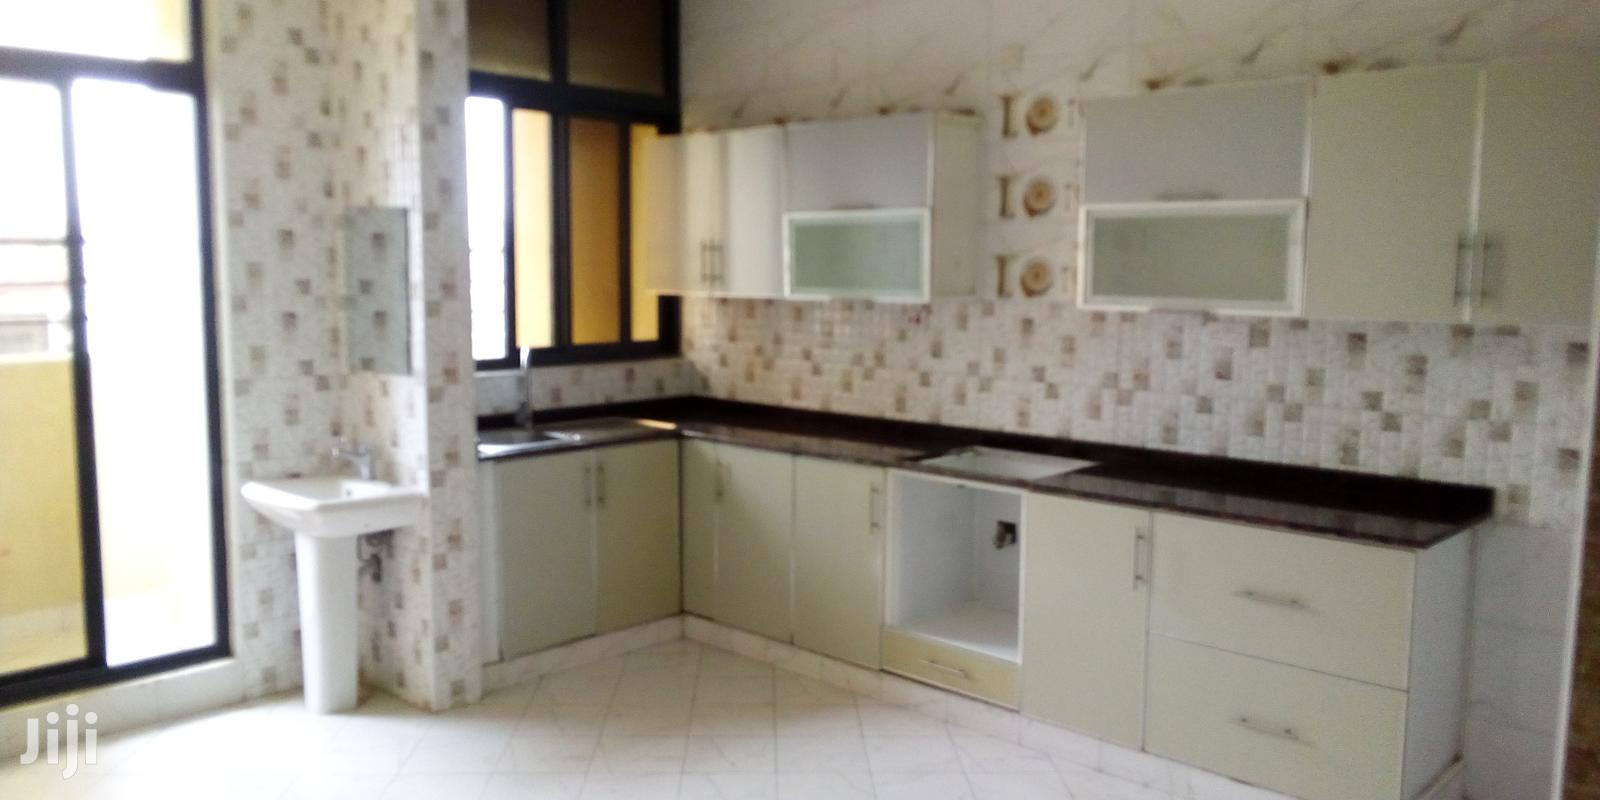 Luxury 3 Bedrooms Semi-Furnished for Rent at Upanga